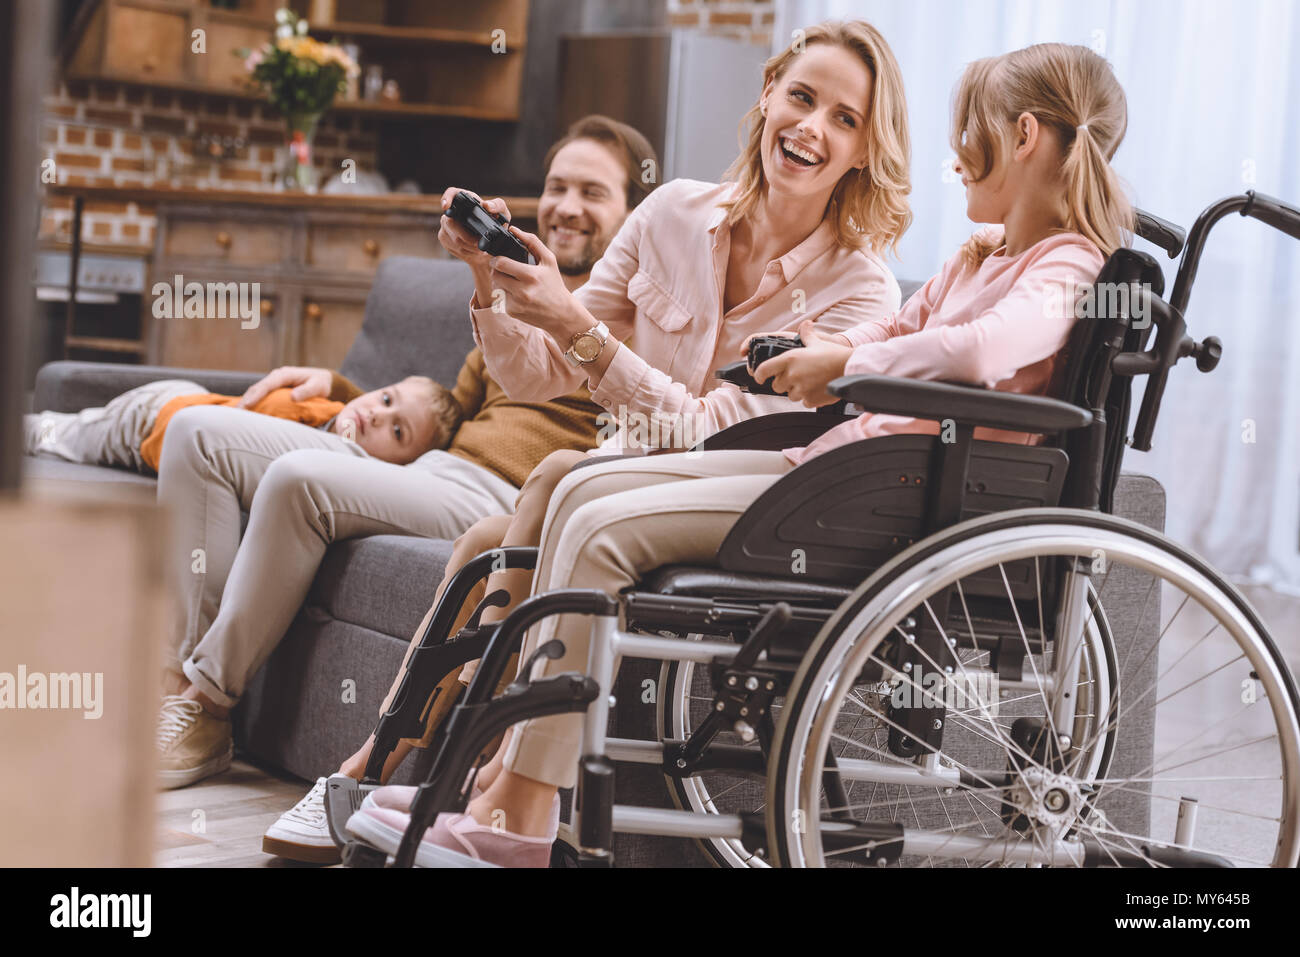 family with disabled child in wheelchair playing with joysticks together at home - Stock Image